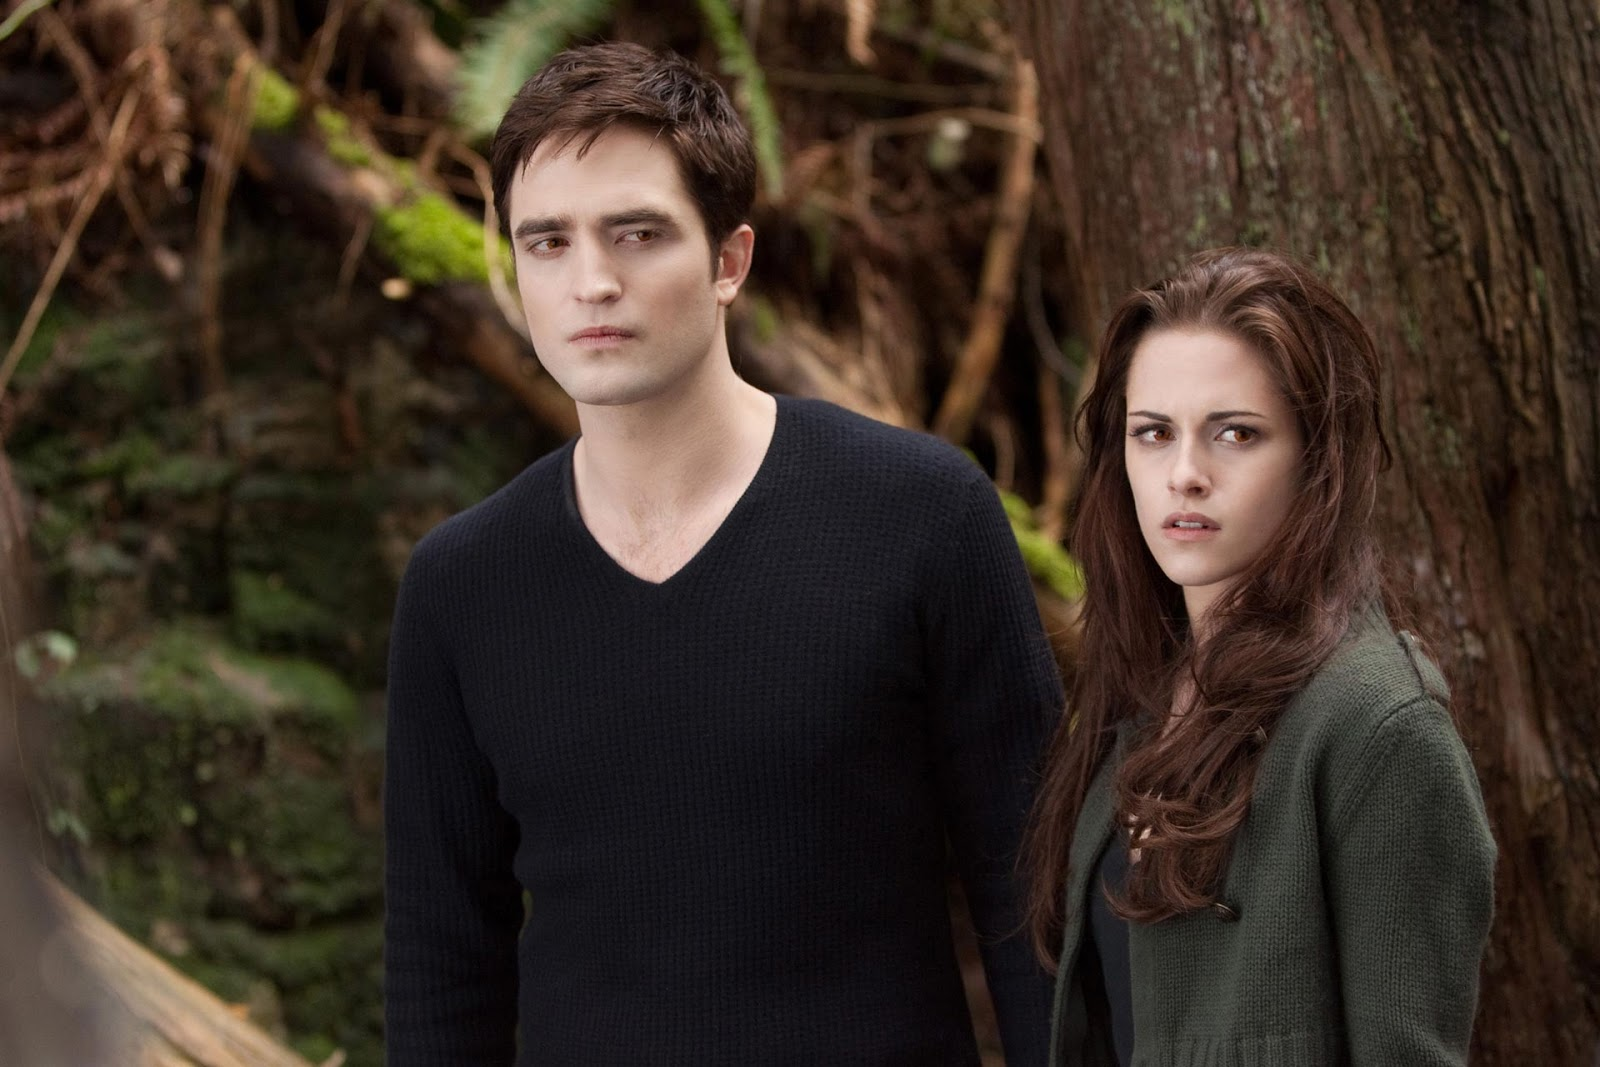 twilight breaking dawn part 2 full movie download 300mb